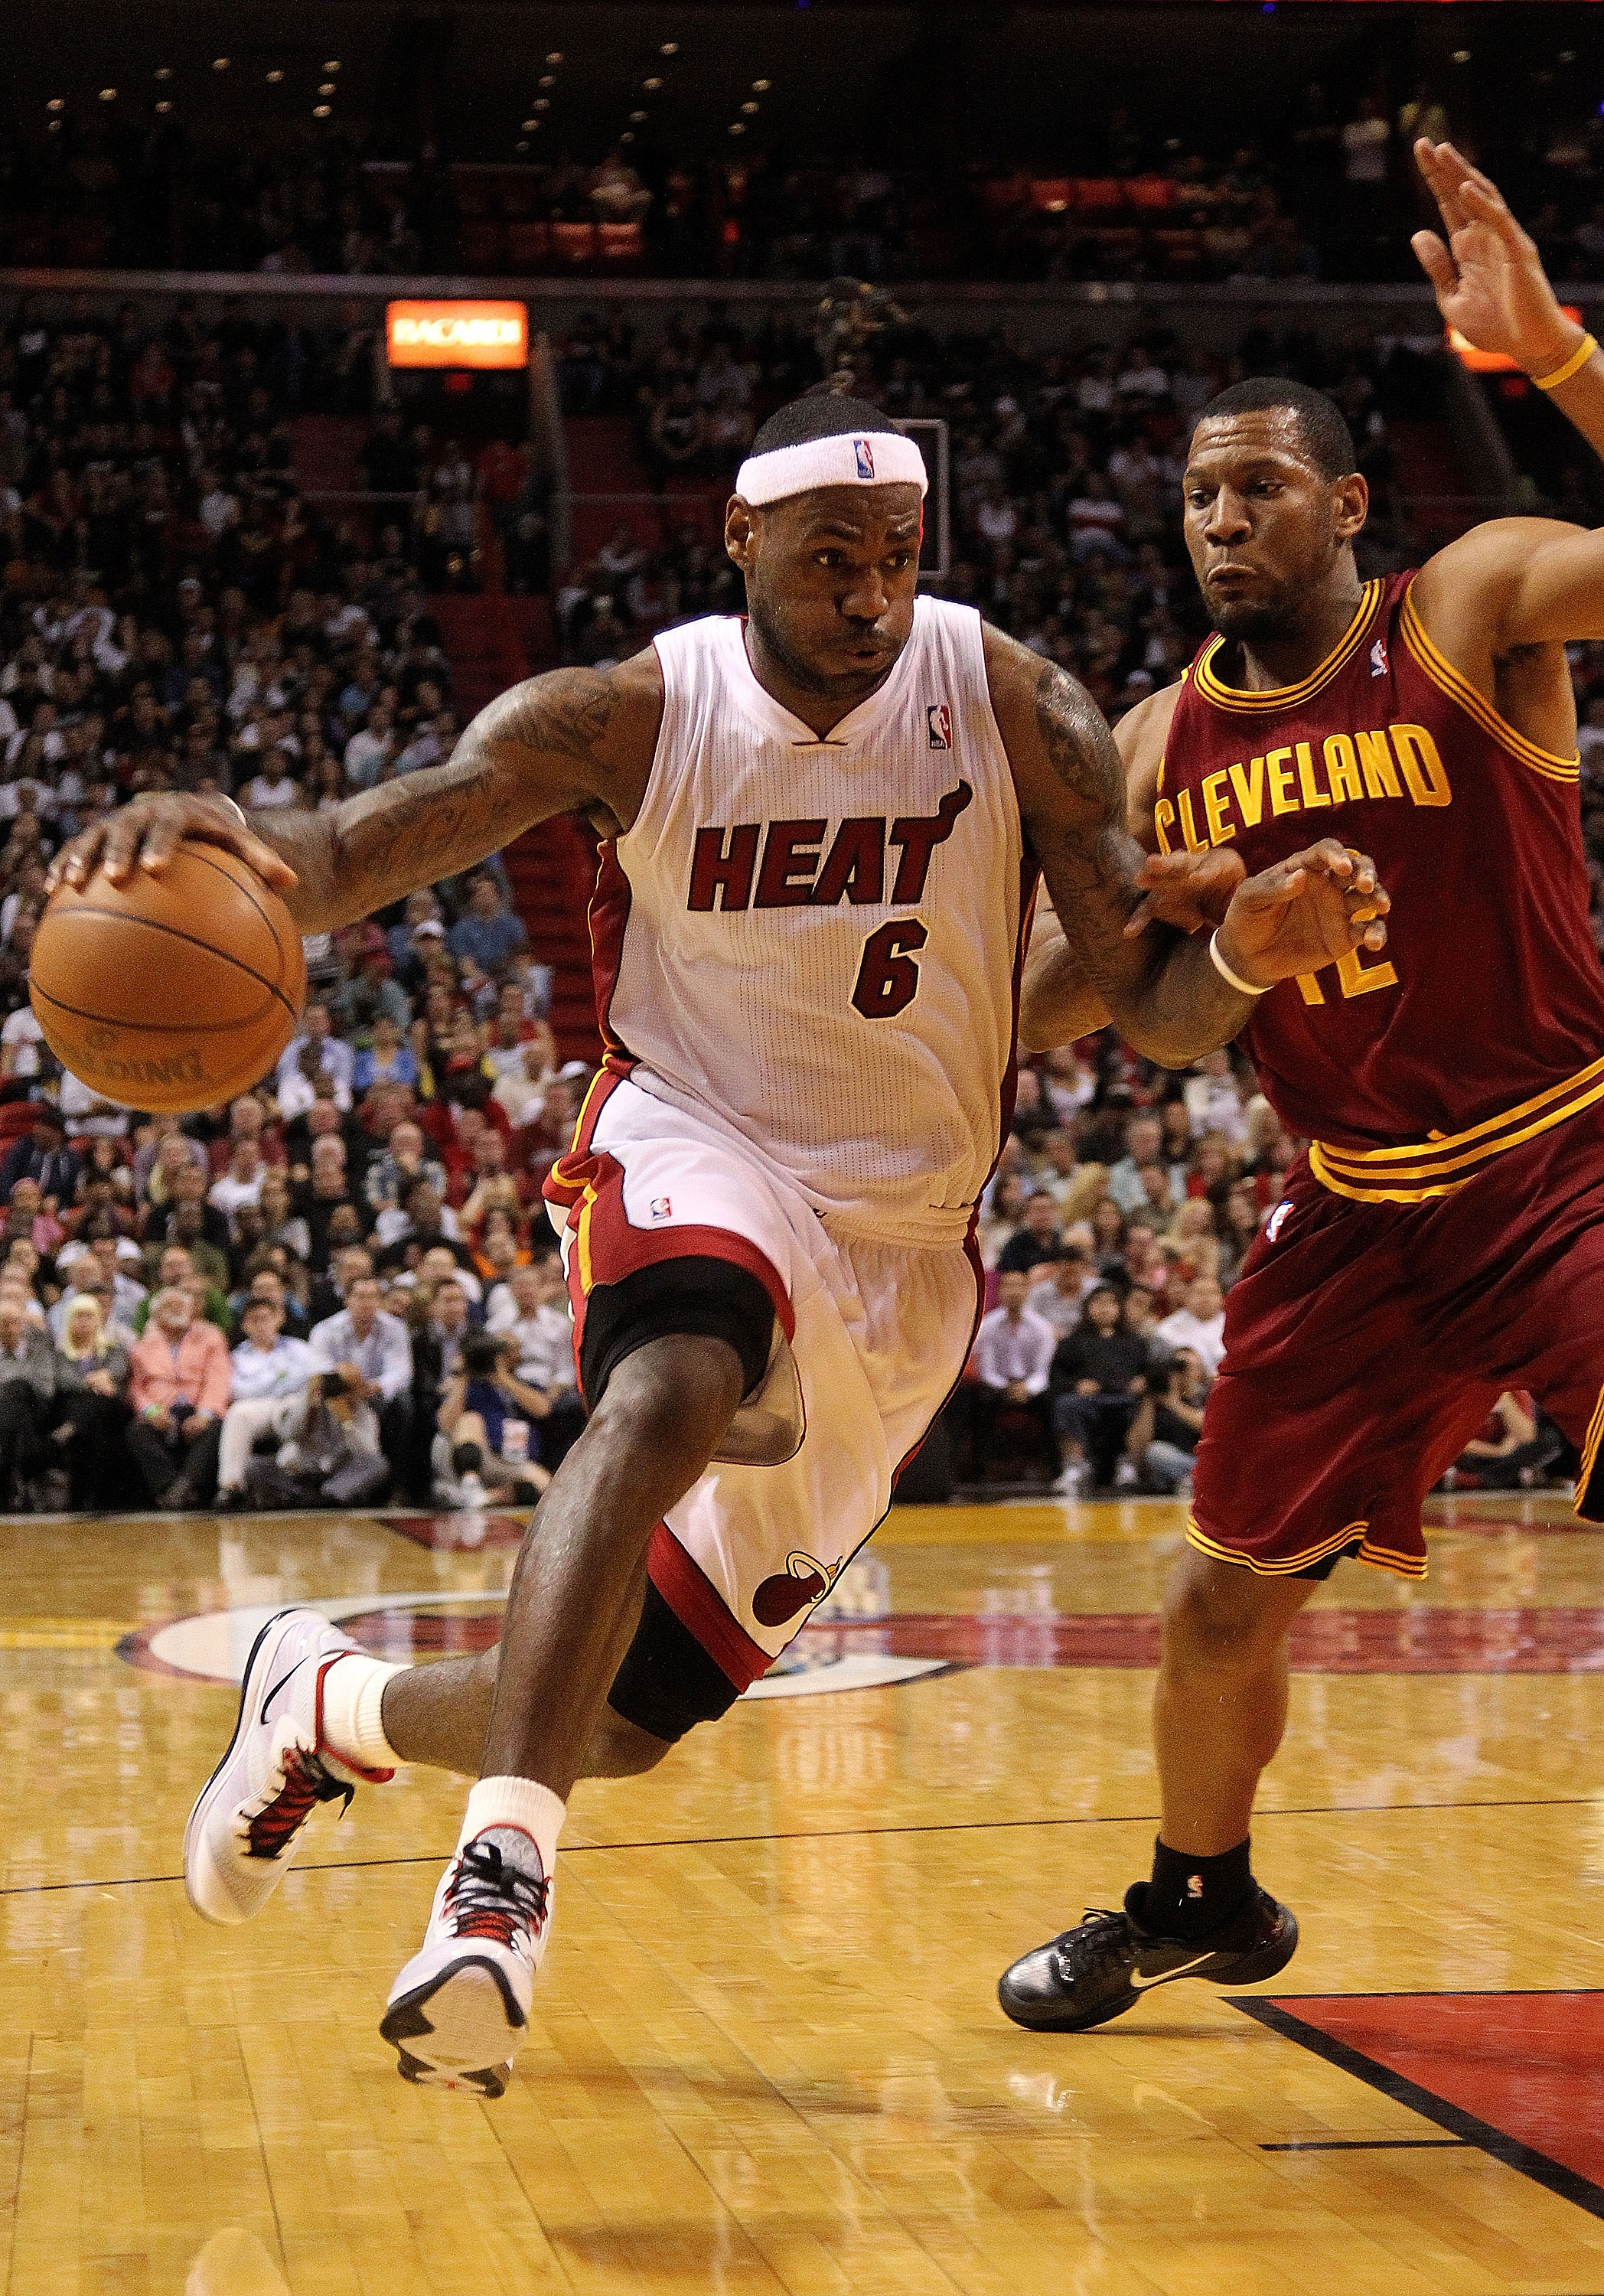 MIAMI, FL - JANUARY 31:  LeBron James #6 of the Miami Heat drives the lane during a game against the Cleveland Cavaliers at American Airlines Arena on January 31, 2011 in Miami, Florida. NOTE TO USER: User expressly acknowledges and agrees that, by downlo